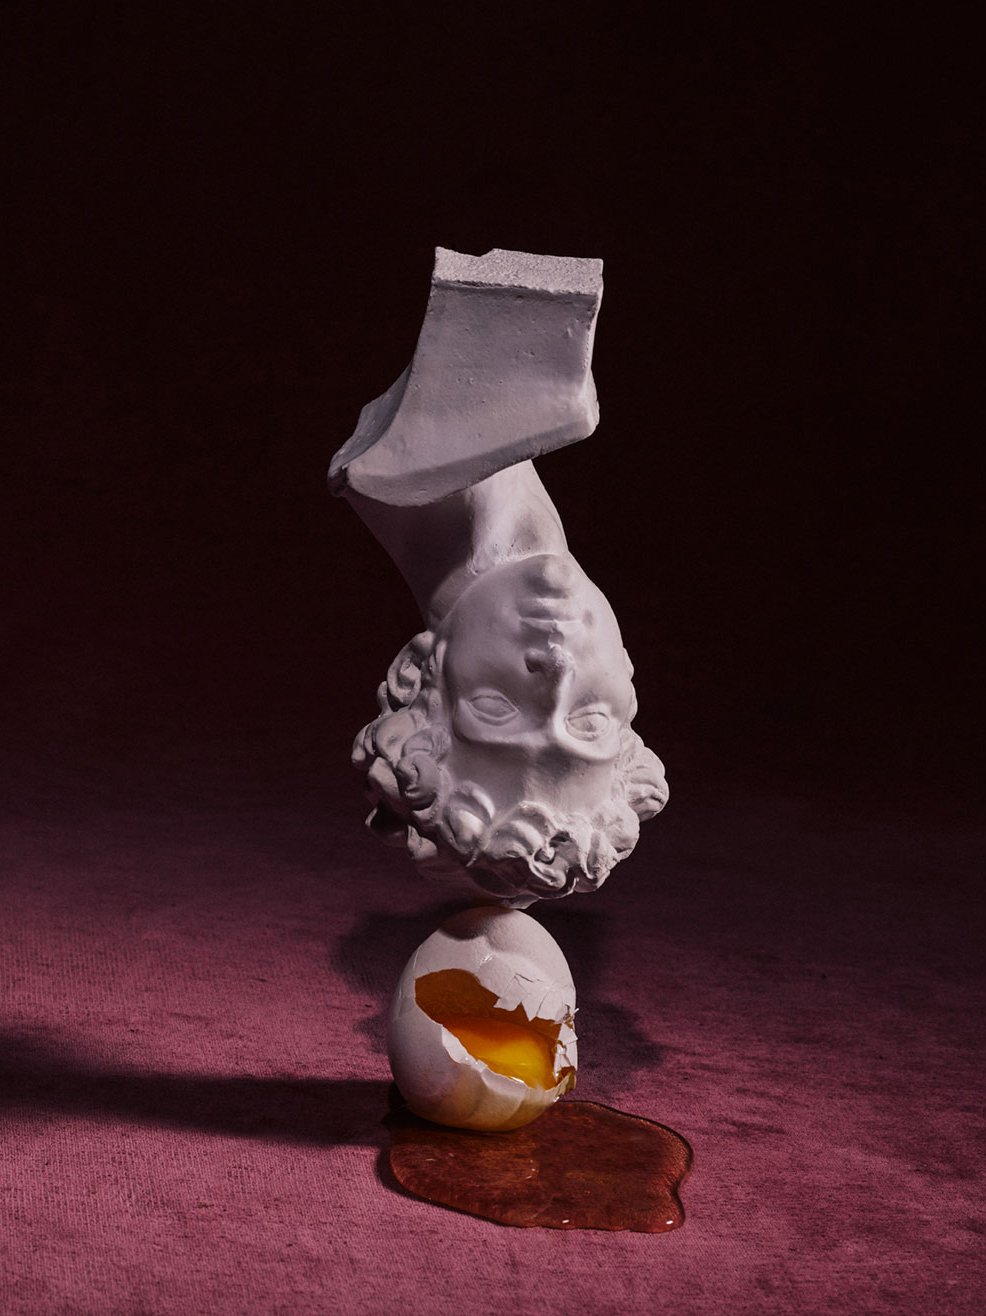 Still life image of upside down bust balancing on top of a broken egg. Romance Journal Issue 02 Resistance. Publication design, art direction, print design by RoAndCo.